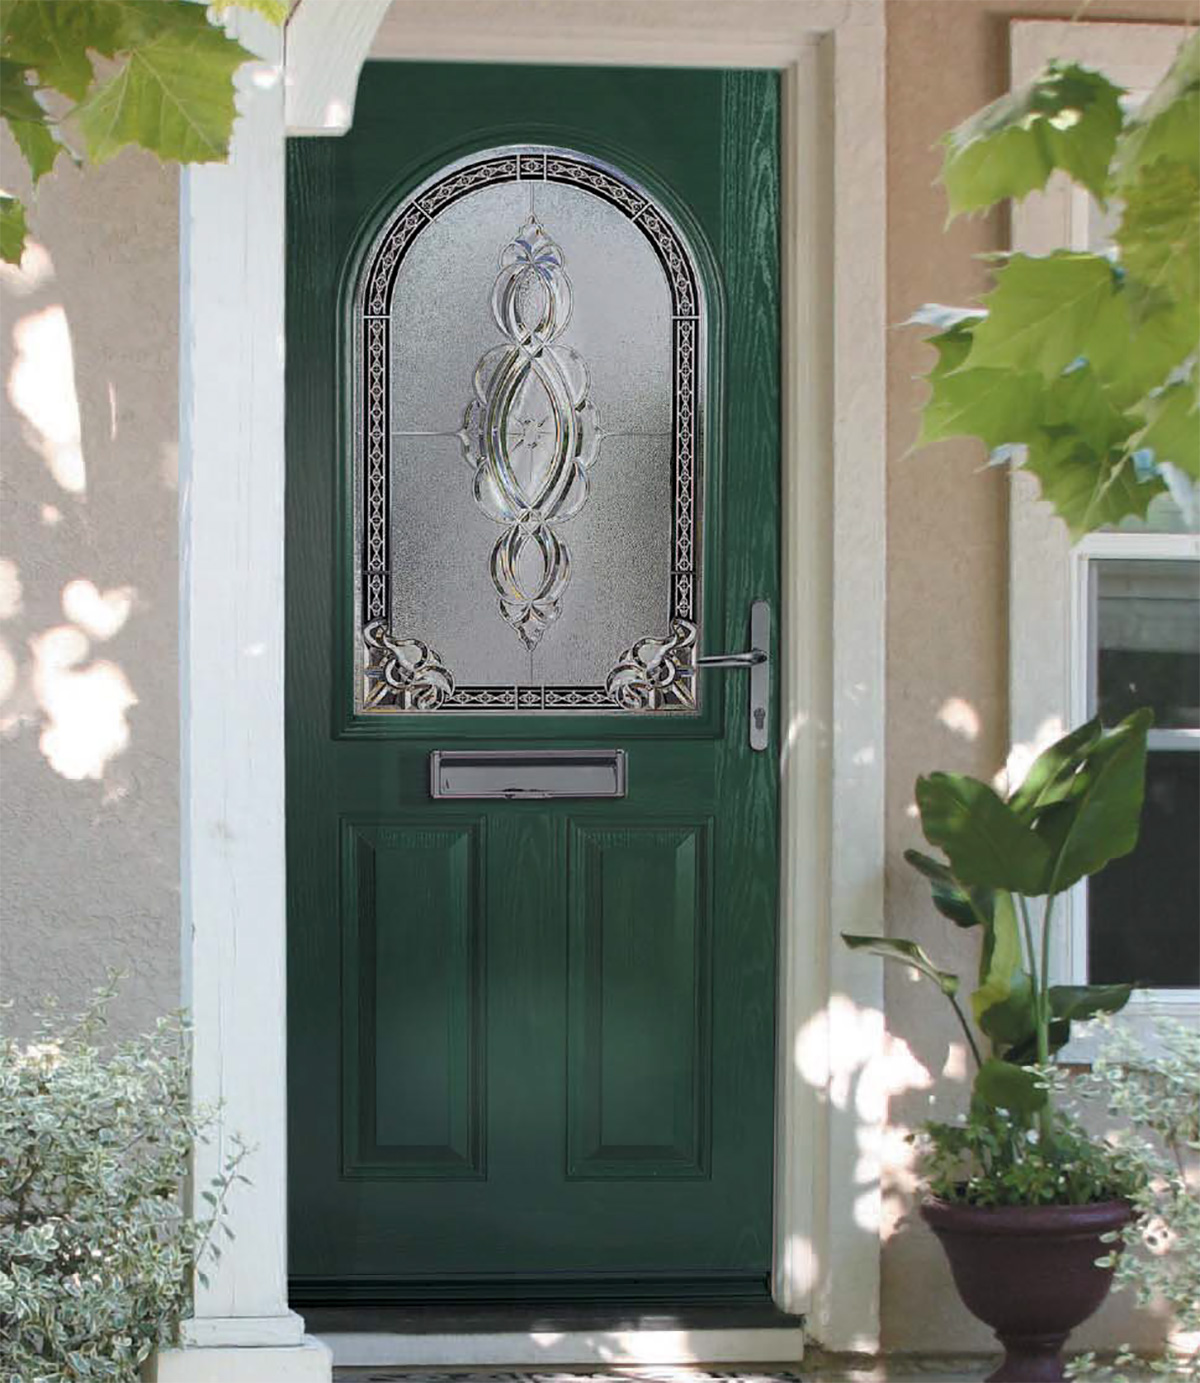 Windsor & Caernarfon Composite Doors